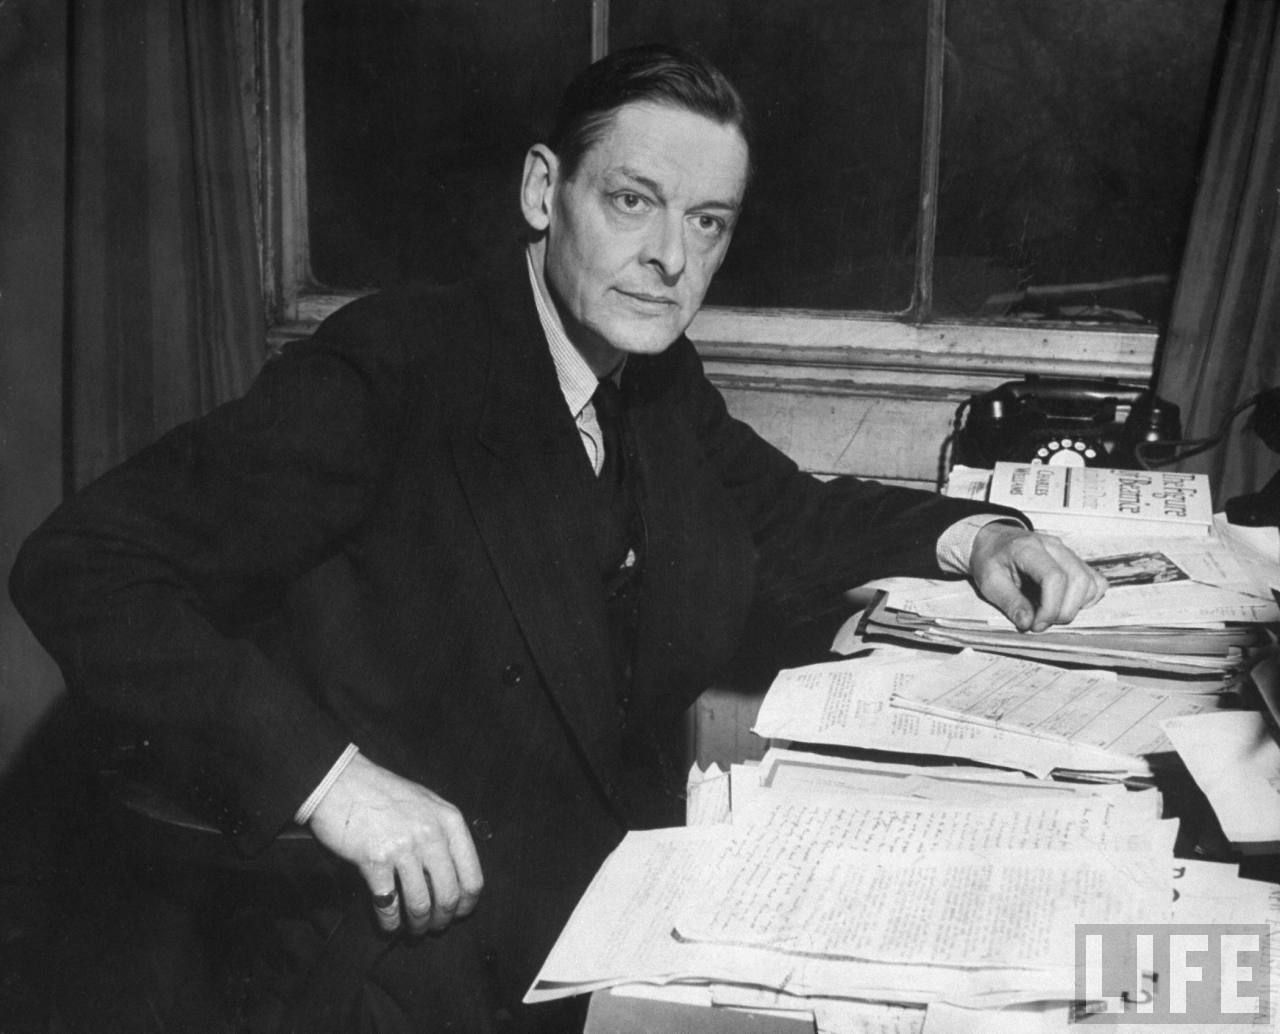 an analysis of writing styles in the waste land by t s eliot Assembled out of dramatic vignettes based on eliot's london life, the waste land's extraordinary intensity of london writing eliot t s eliot (1984), and.